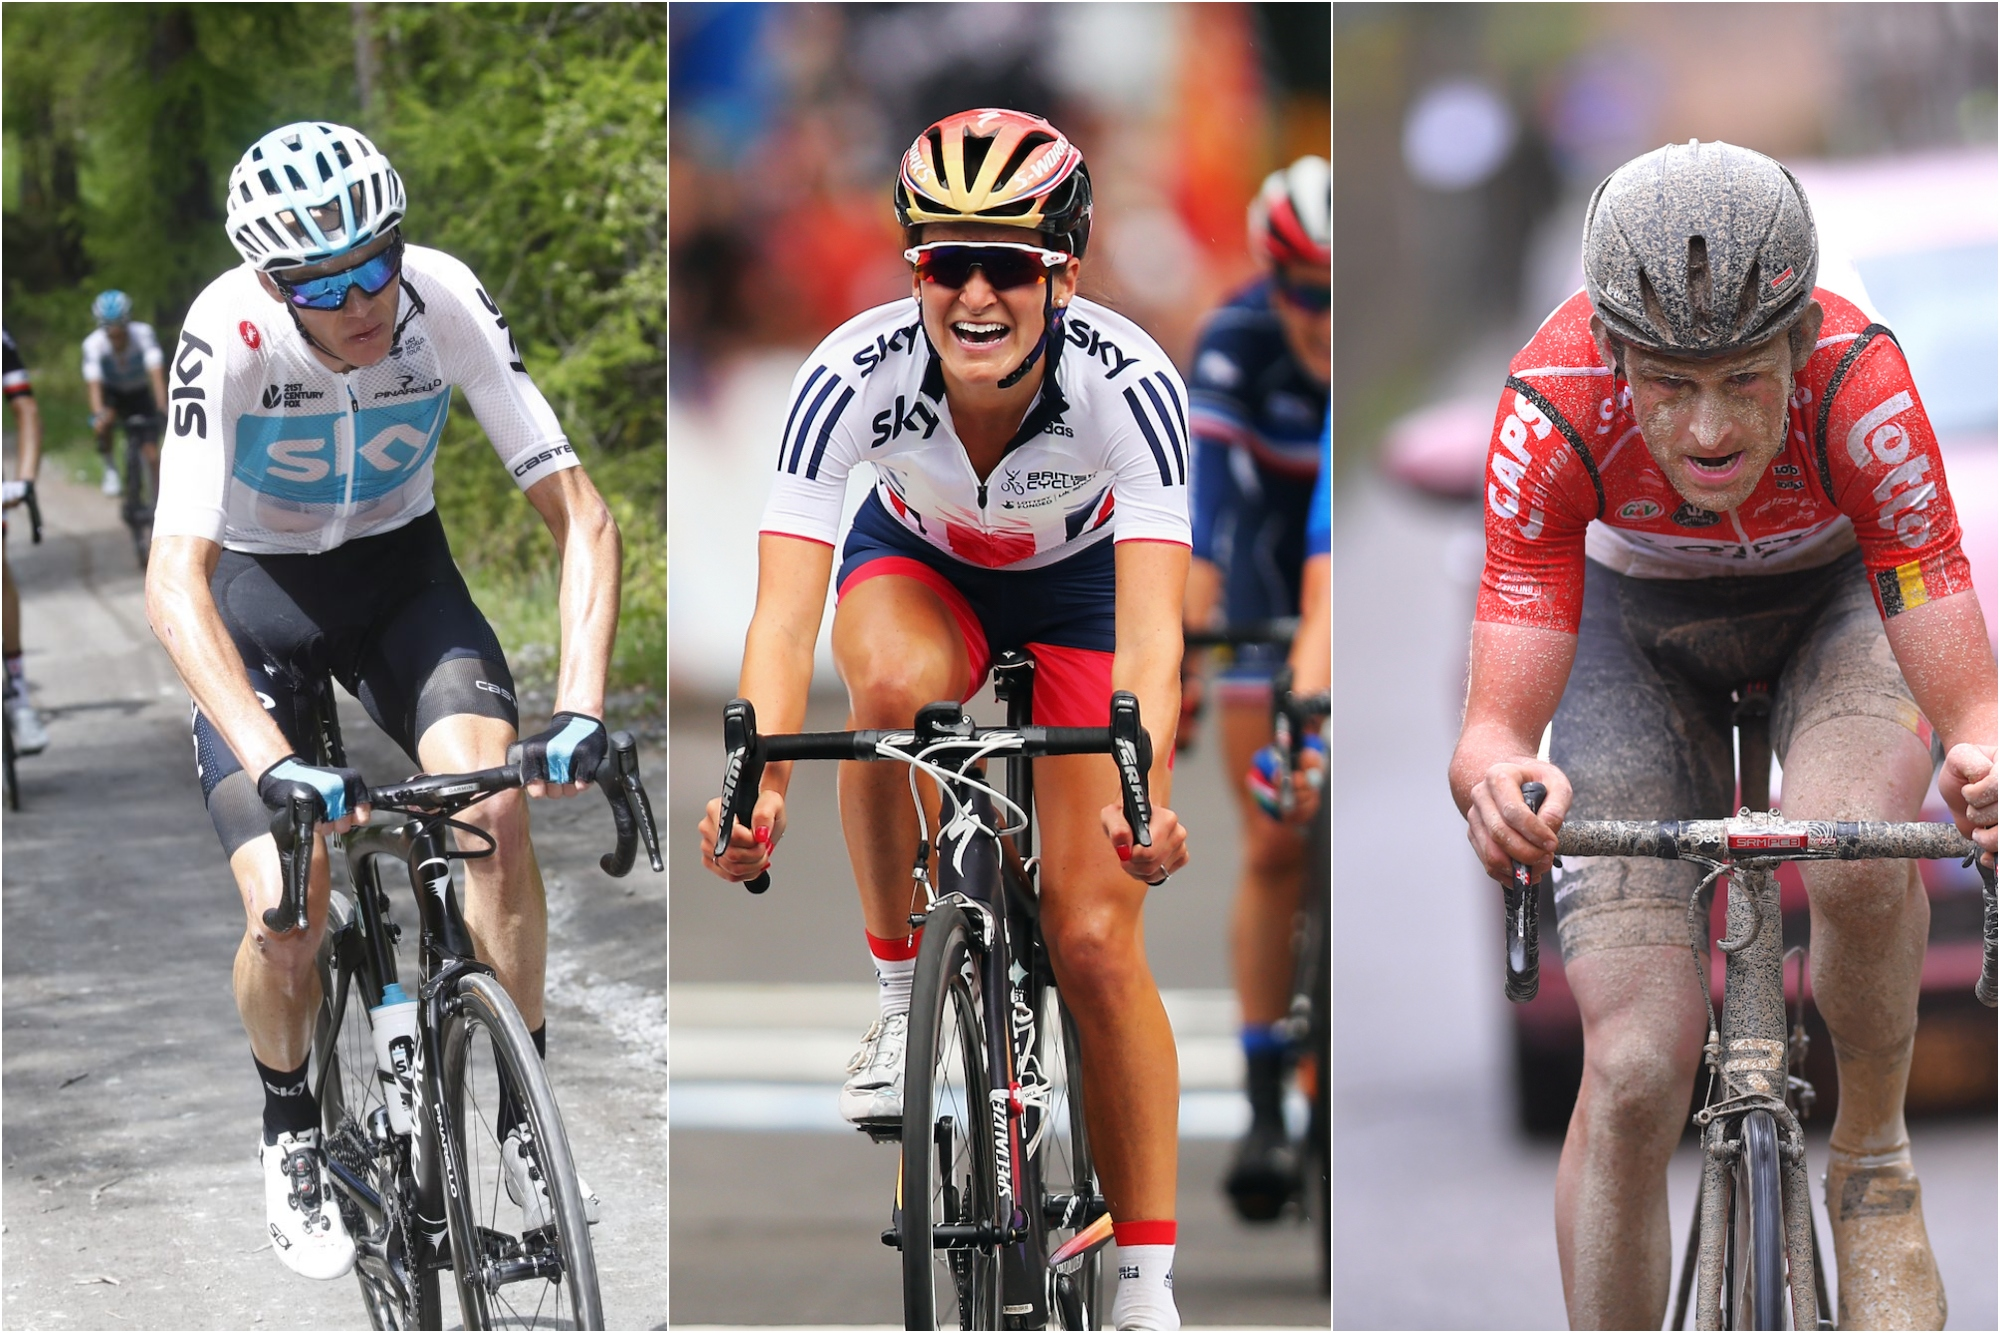 The best races of the last decade